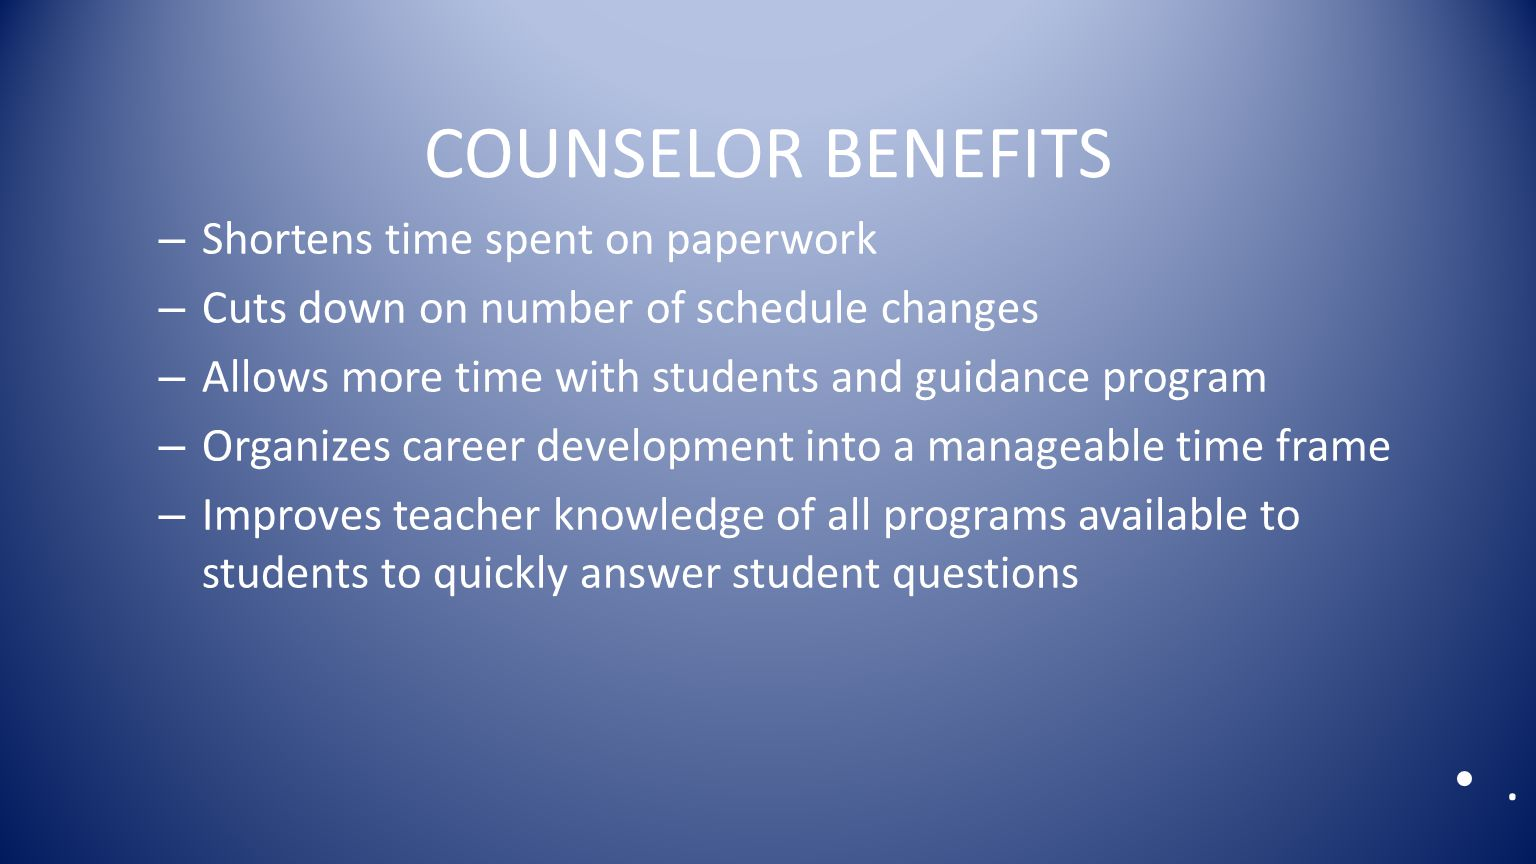 COUNSELOR BENEFITS – Shortens time spent on paperwork – Cuts down on number of schedule changes – Allows more time with students and guidance program – Organizes career development into a manageable time frame – Improves teacher knowledge of all programs available to students to quickly answer student questions.